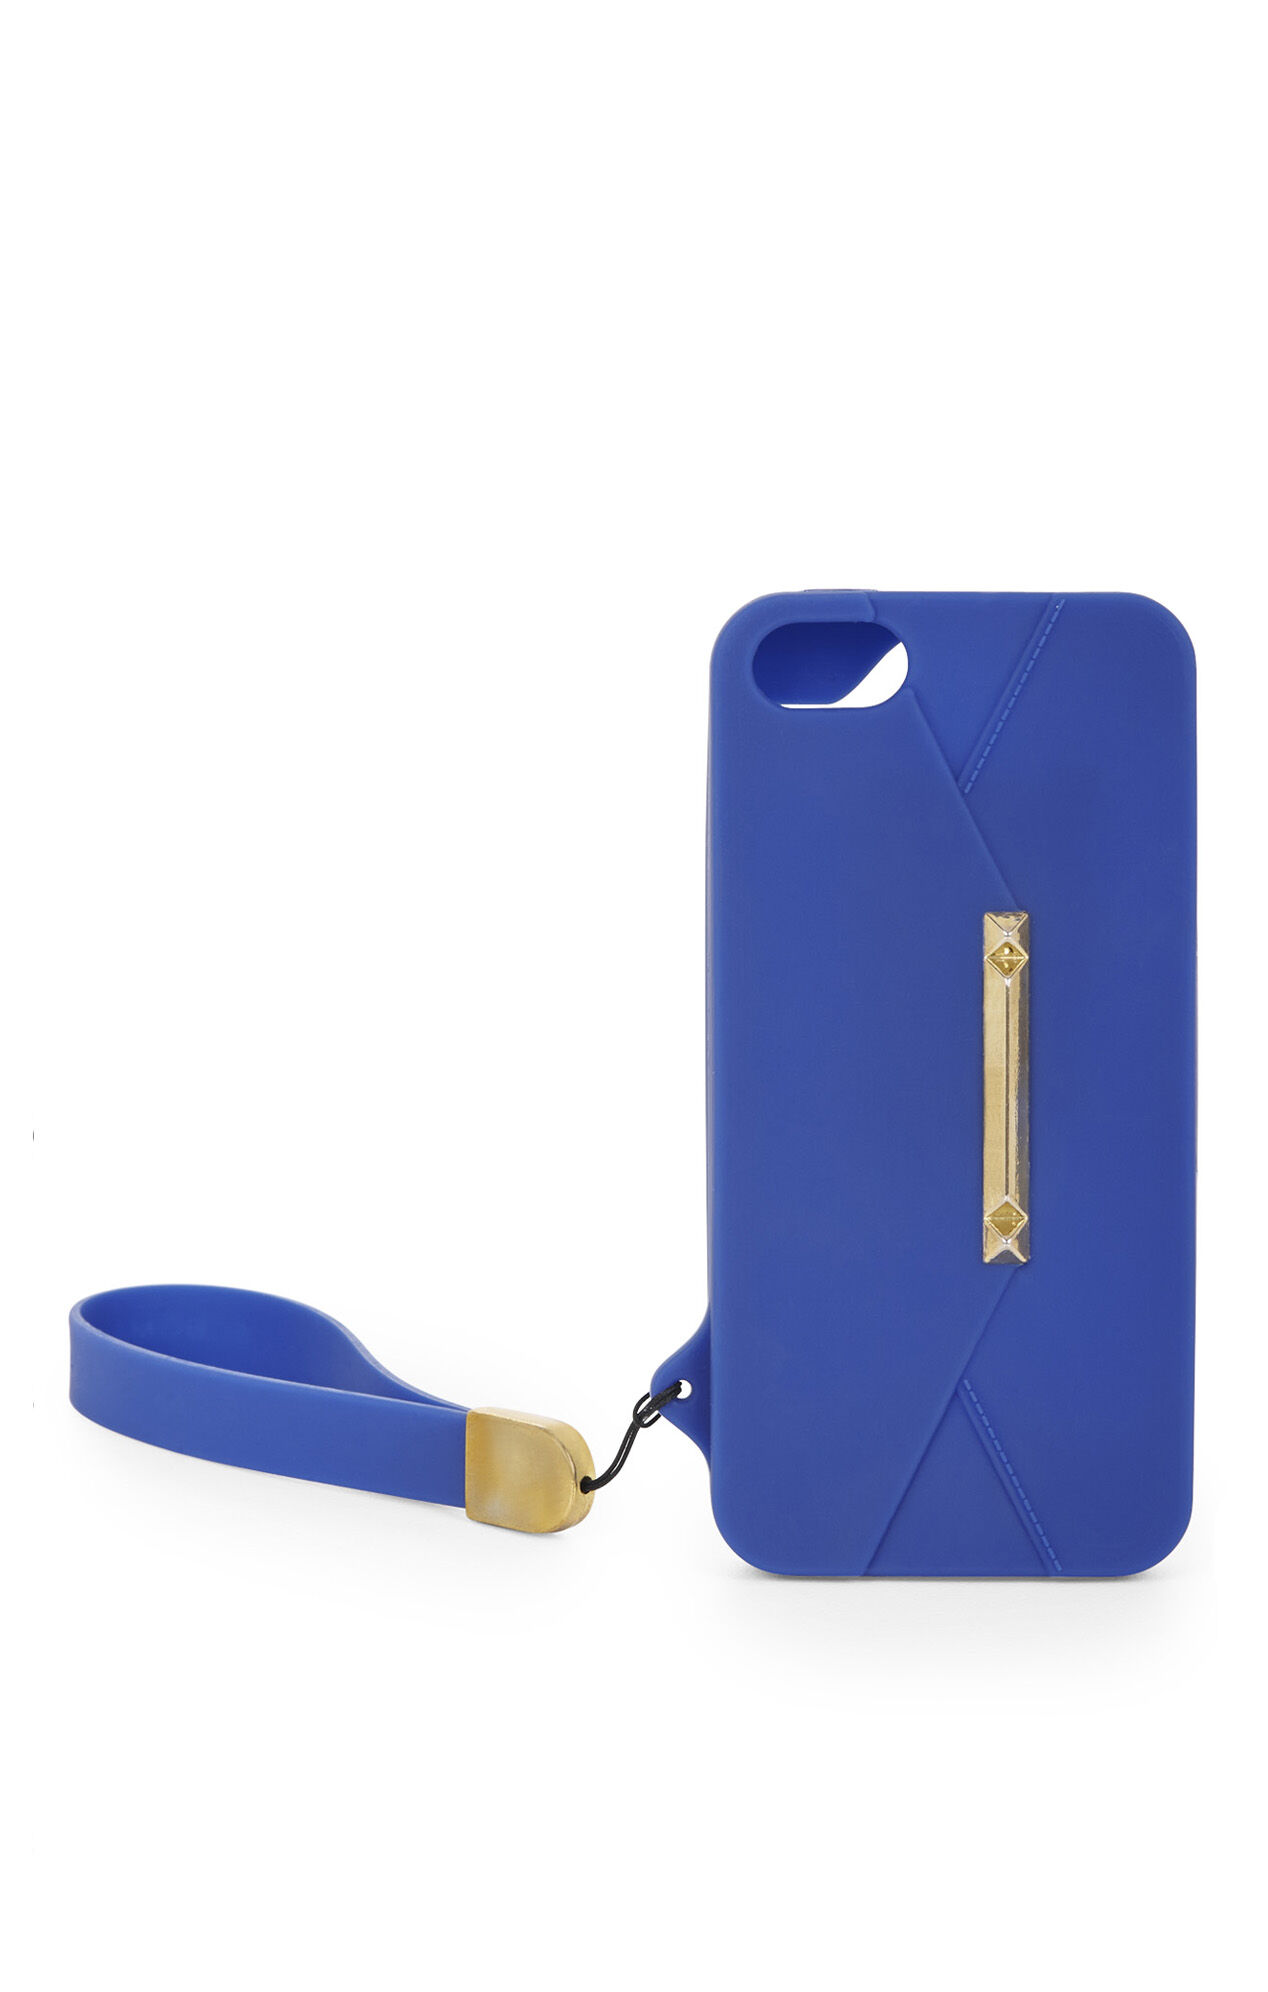 Envelope Clutch iPhone 5 Case